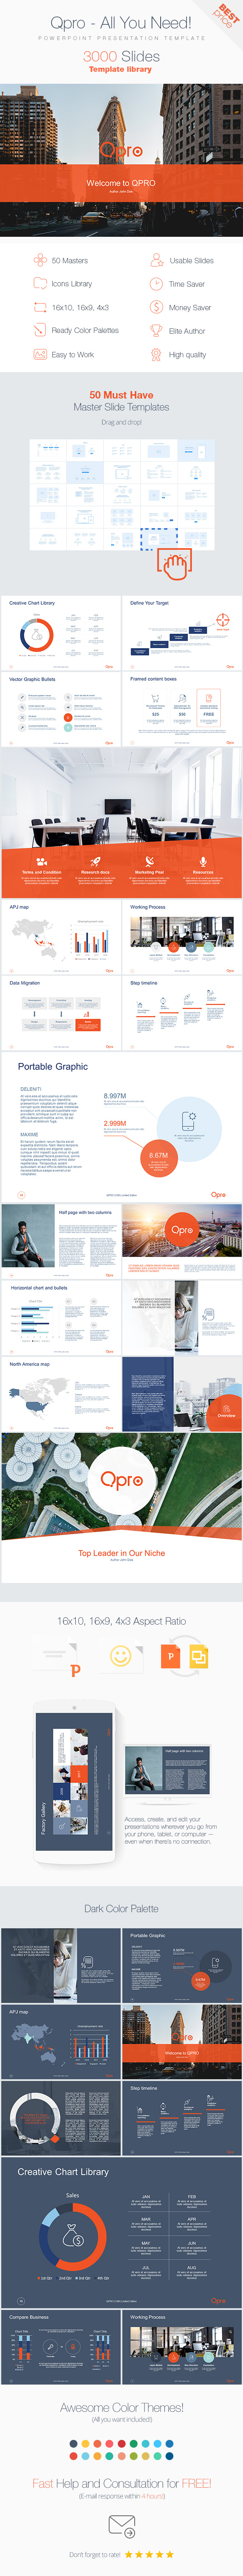 Qpro 3000 - Powerpoint Presentation Template - Business PowerPoint Templates